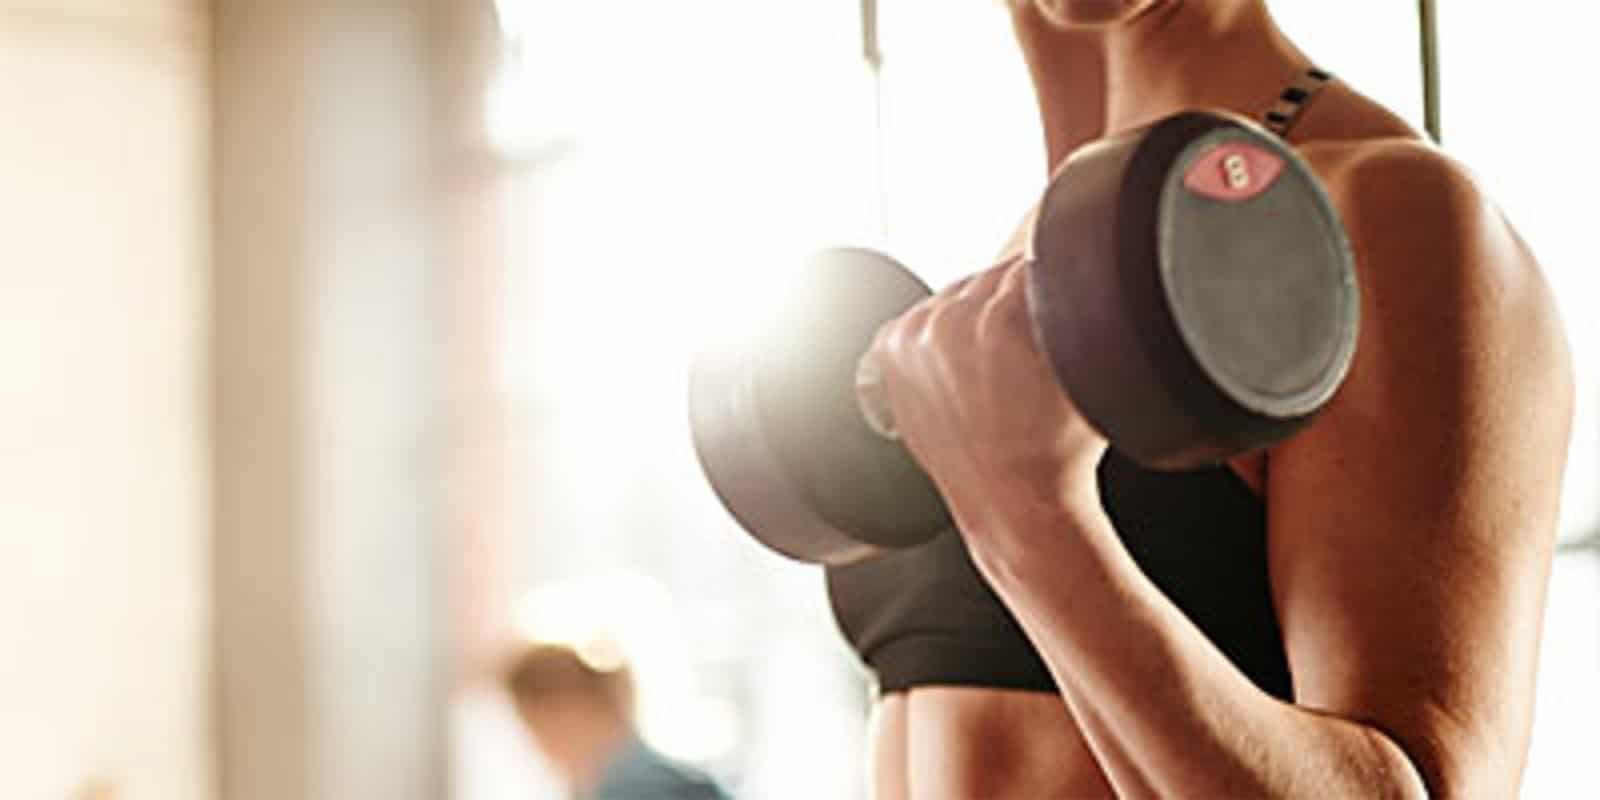 Diabetes Patients Should Have Regular Exercise, Weight Training